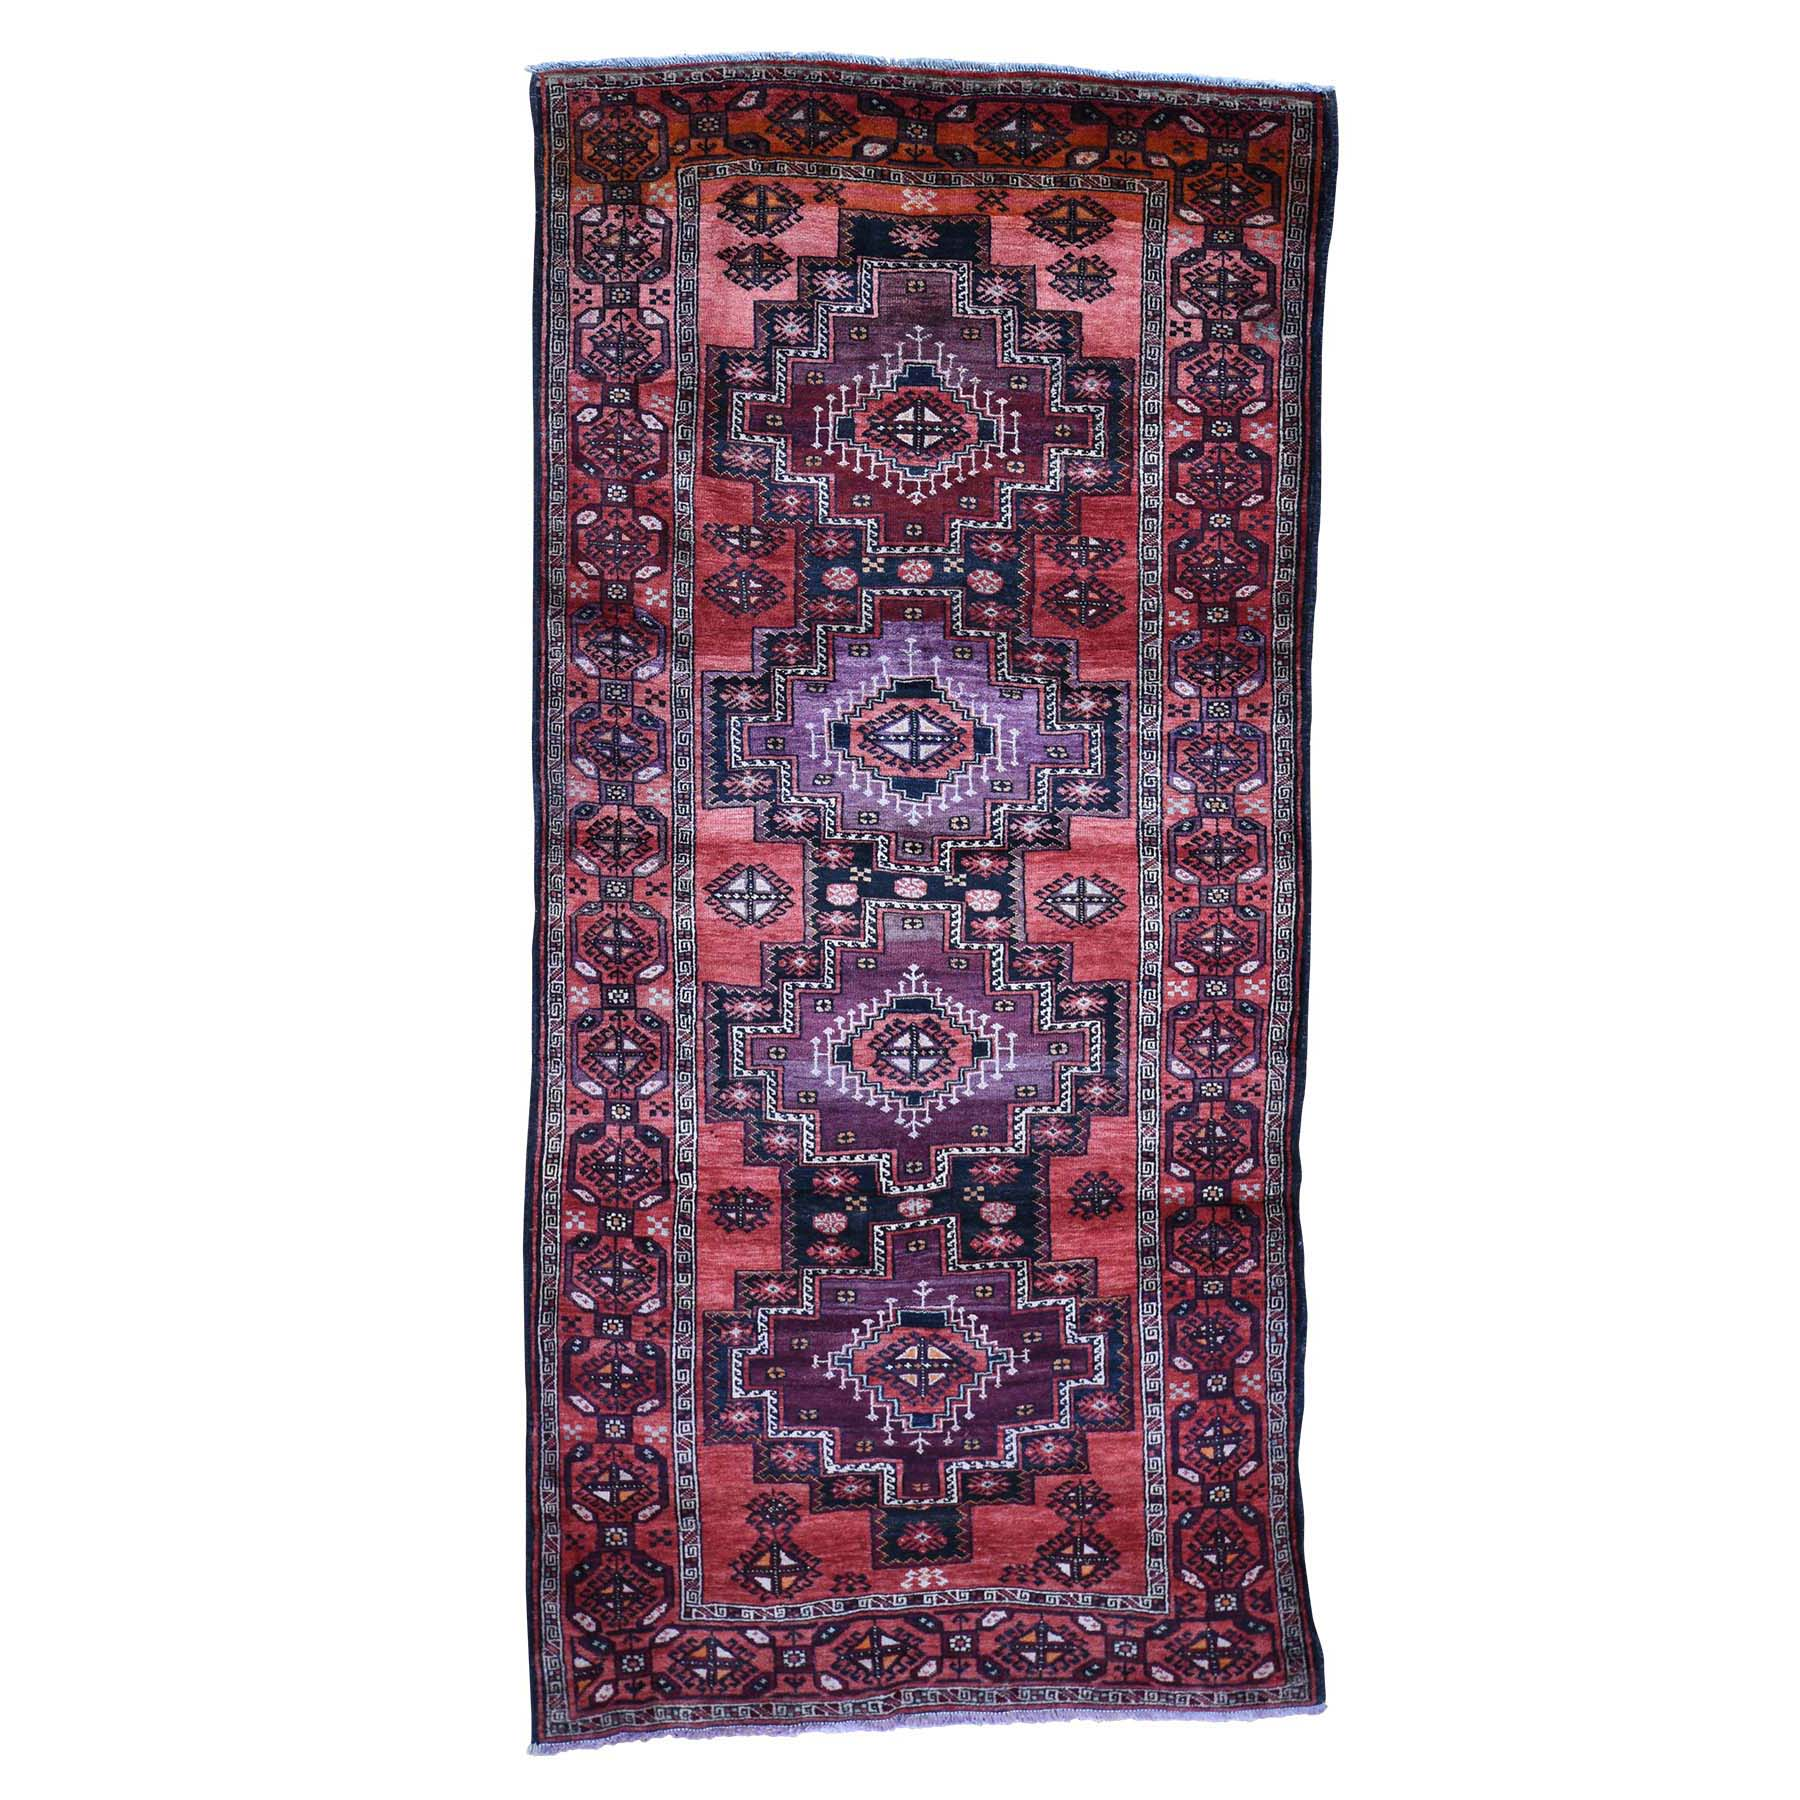 5'X10' Pure Wool Wide Runner Semi Antique Turkoman Village Hand-Knotted Oriental Rug moadba86